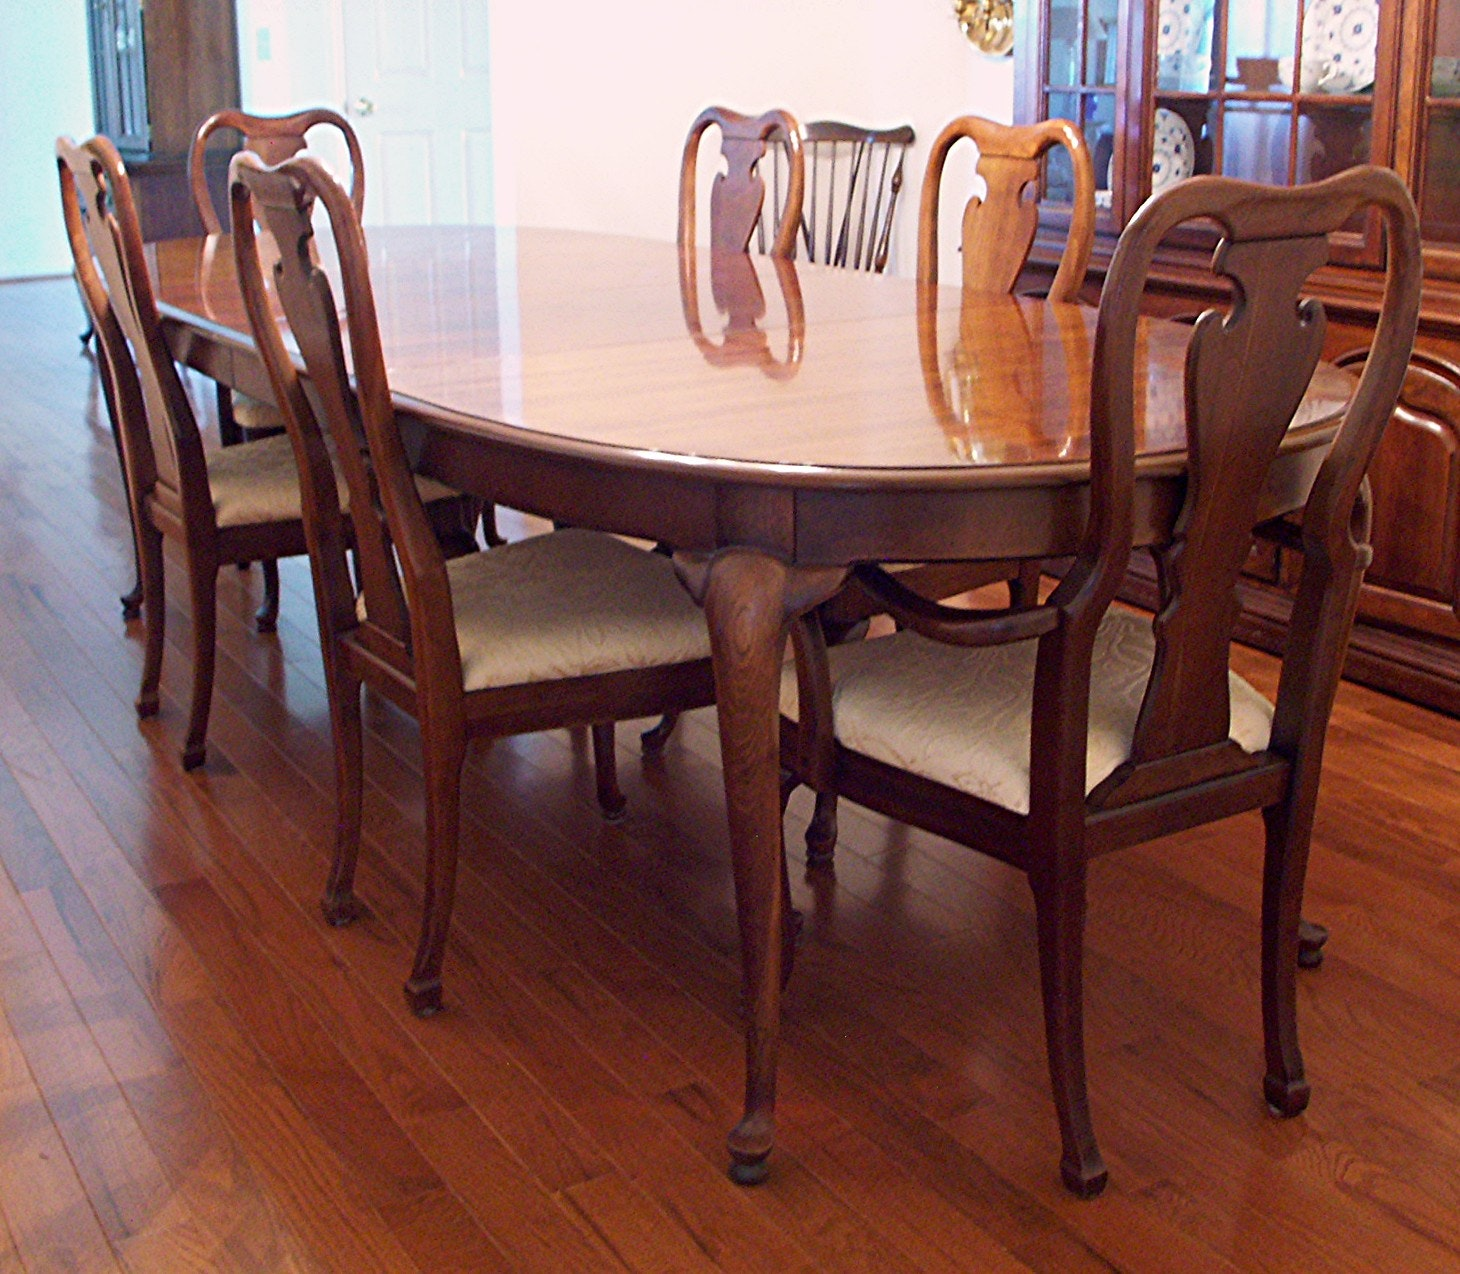 thomasville queen anne dining table and six chairs ebth rh ebth com thomasville dining table and chairs thomasville dining table and hutch